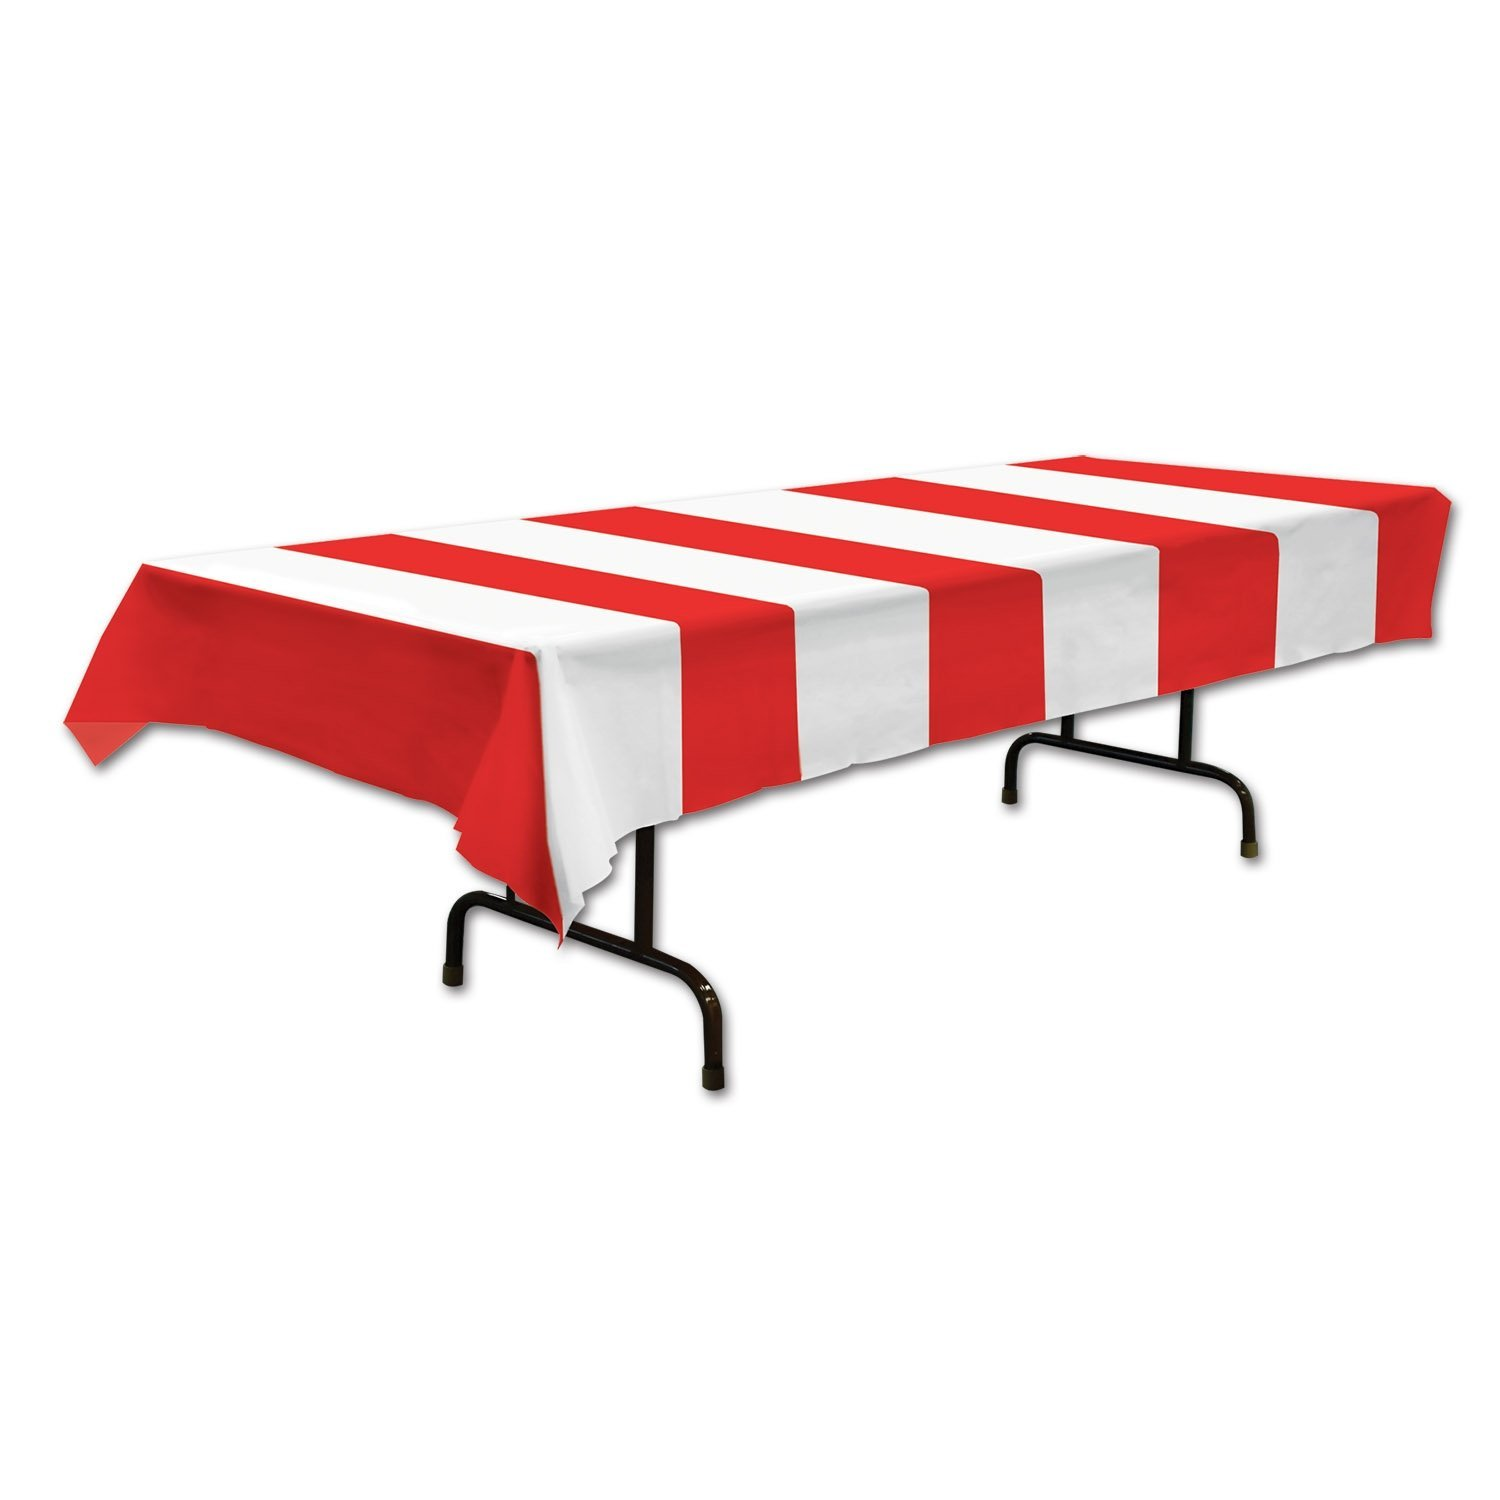 red and white striped table cover